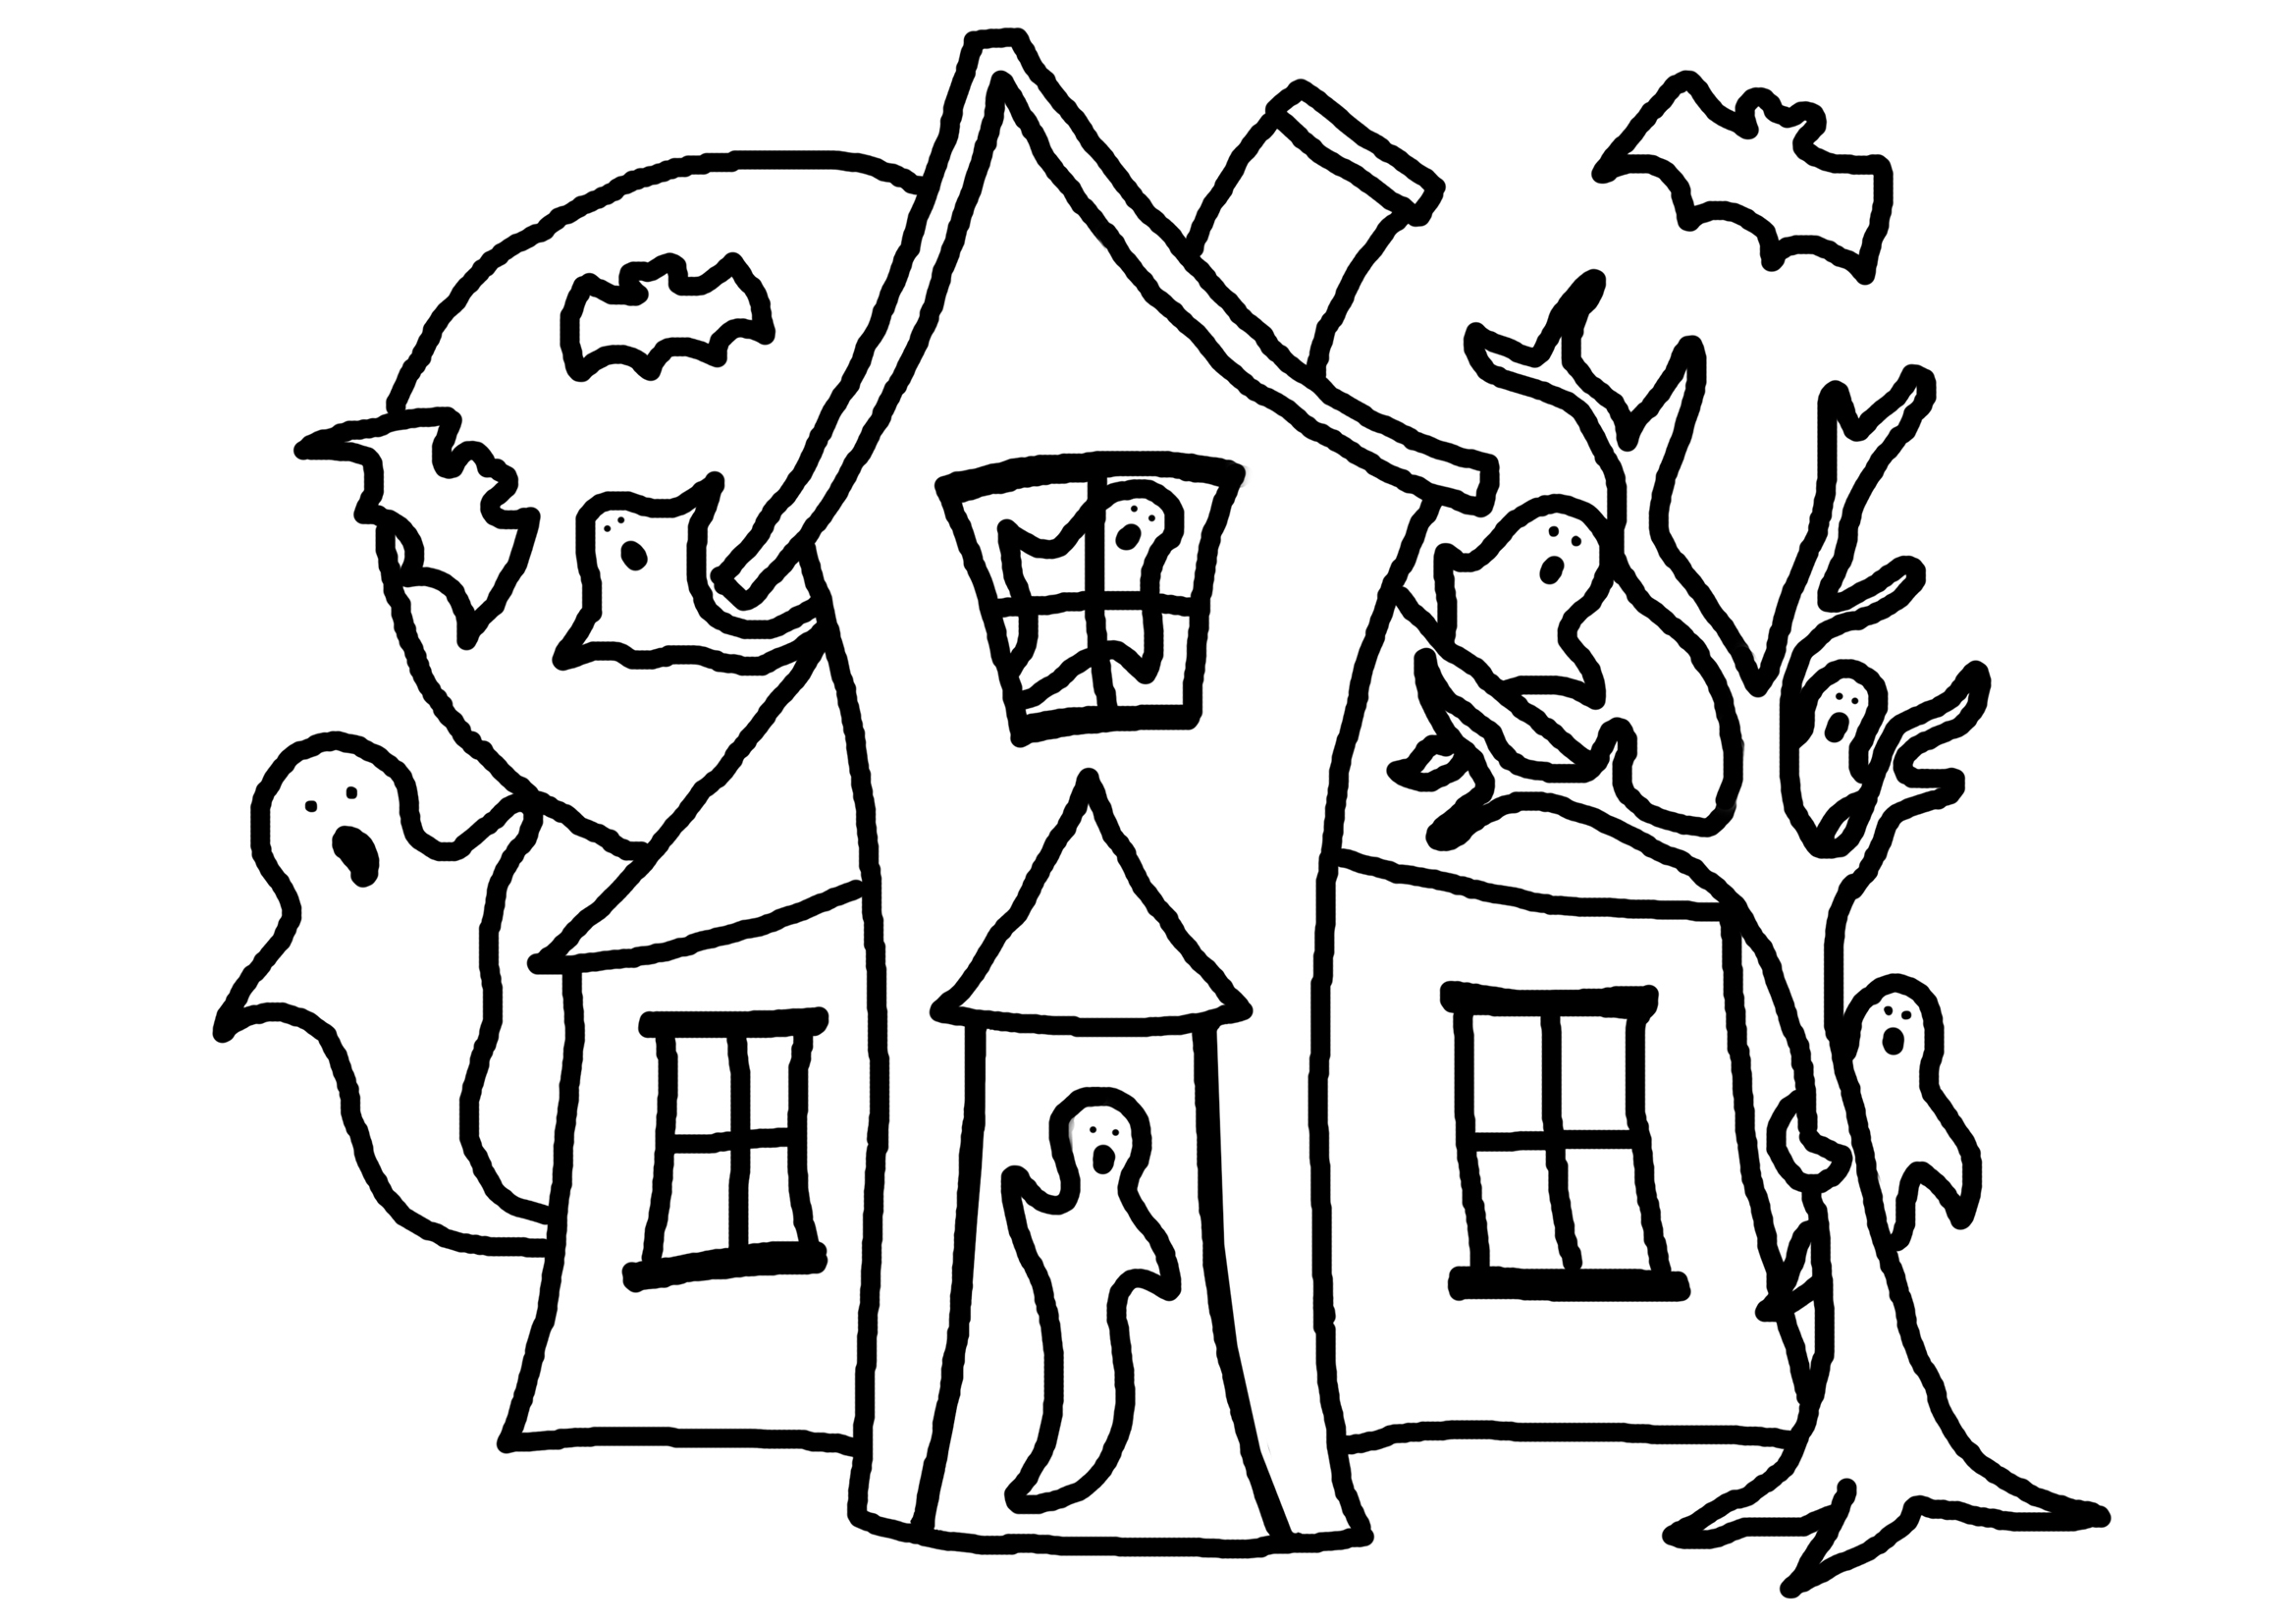 halloween coloring pages easy scary drawing pictures at getdrawings free download coloring pages halloween easy